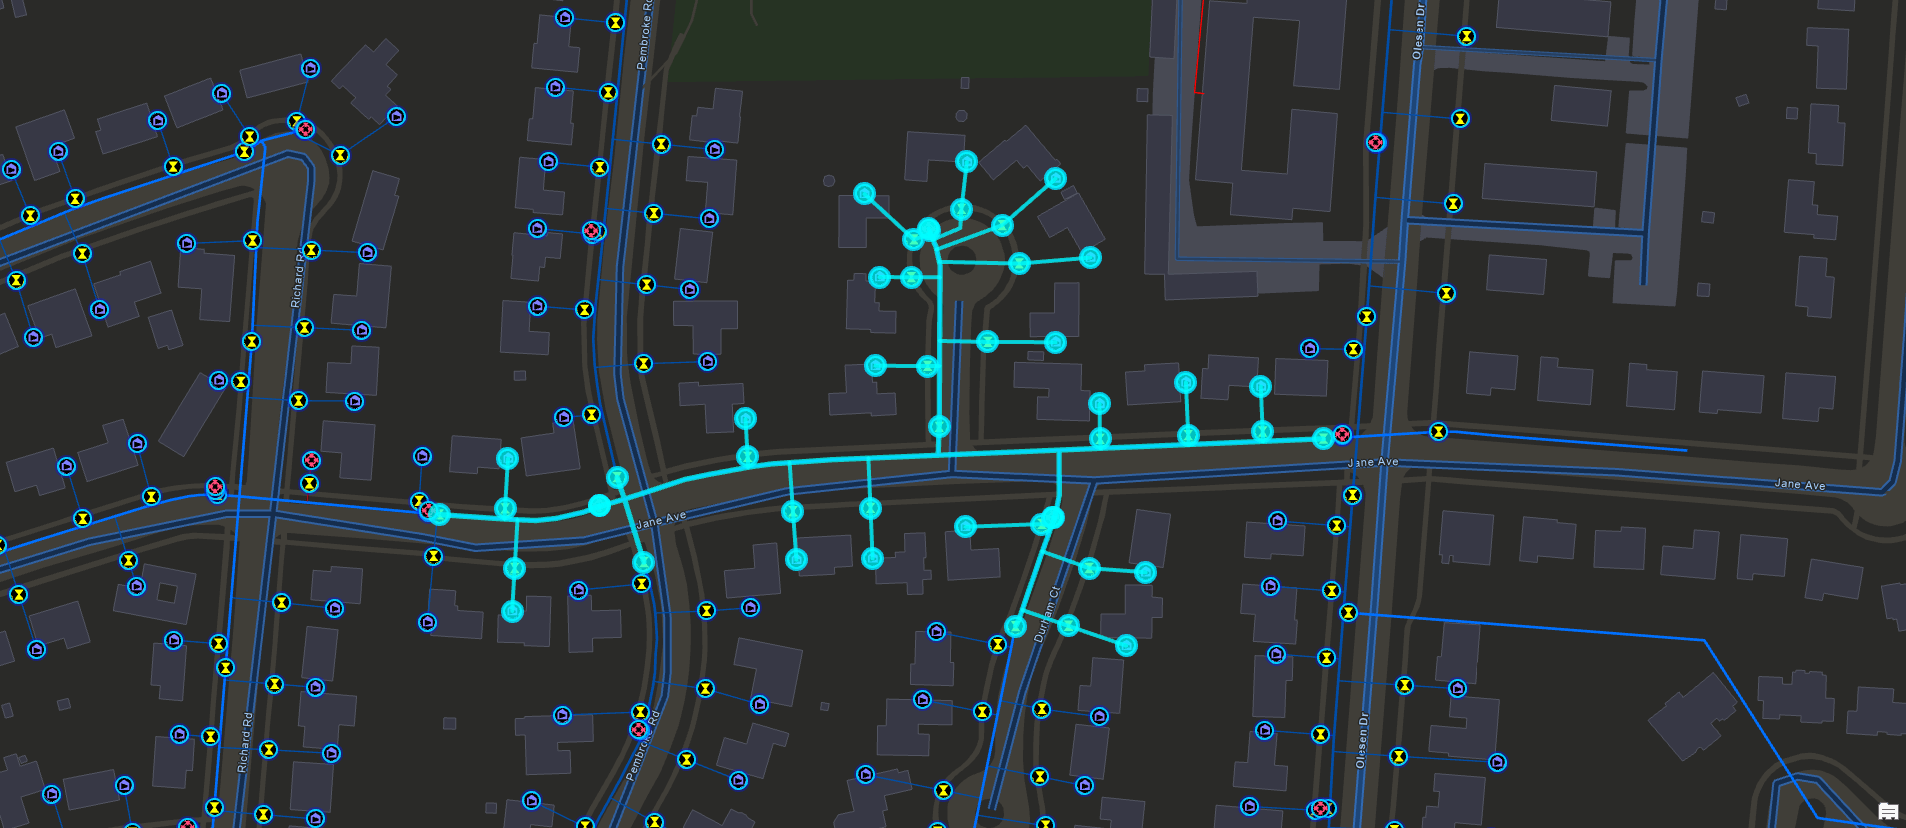 Water Network Tracing